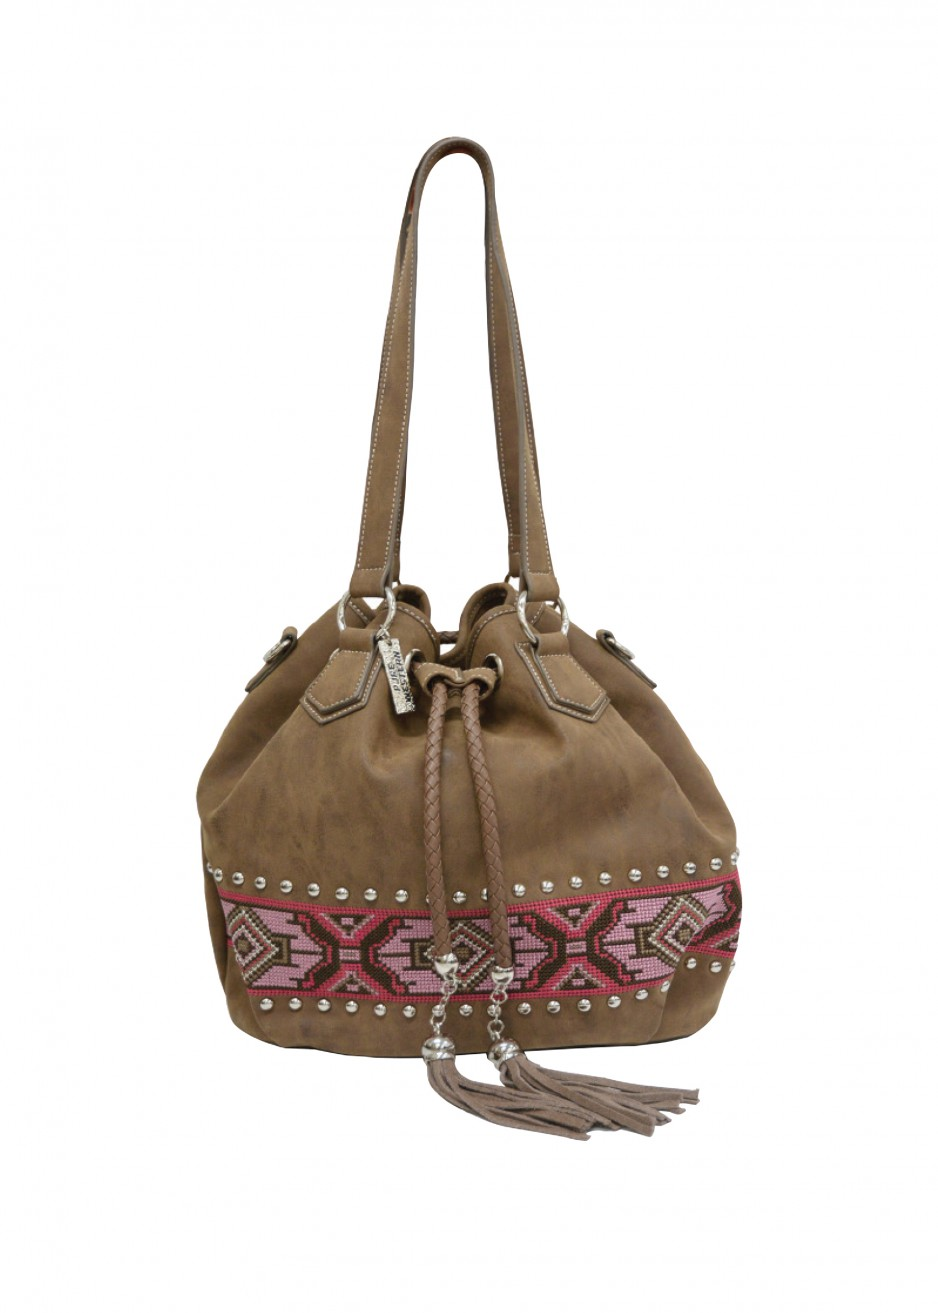 WOMENS FLORINA HANDBAG